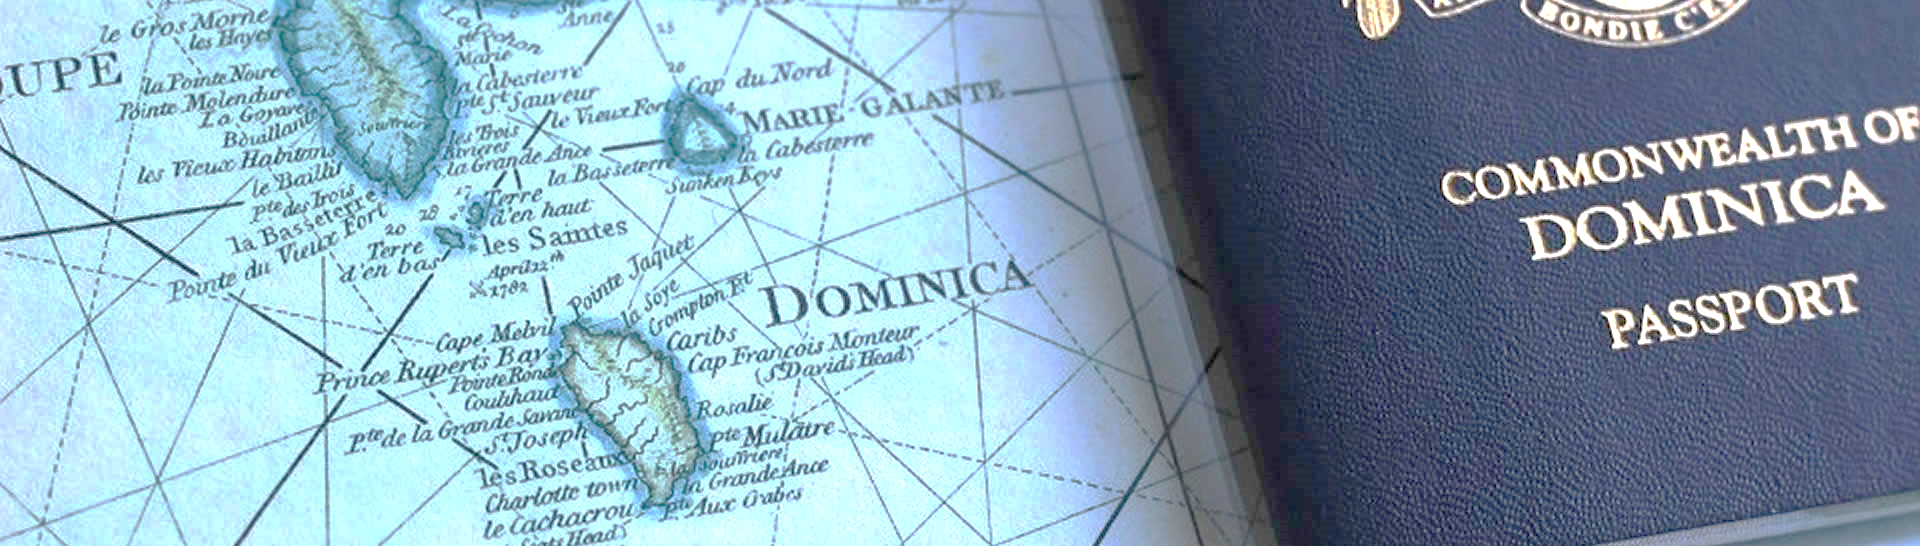 Citizenship Program in Commonwealth of Dominica